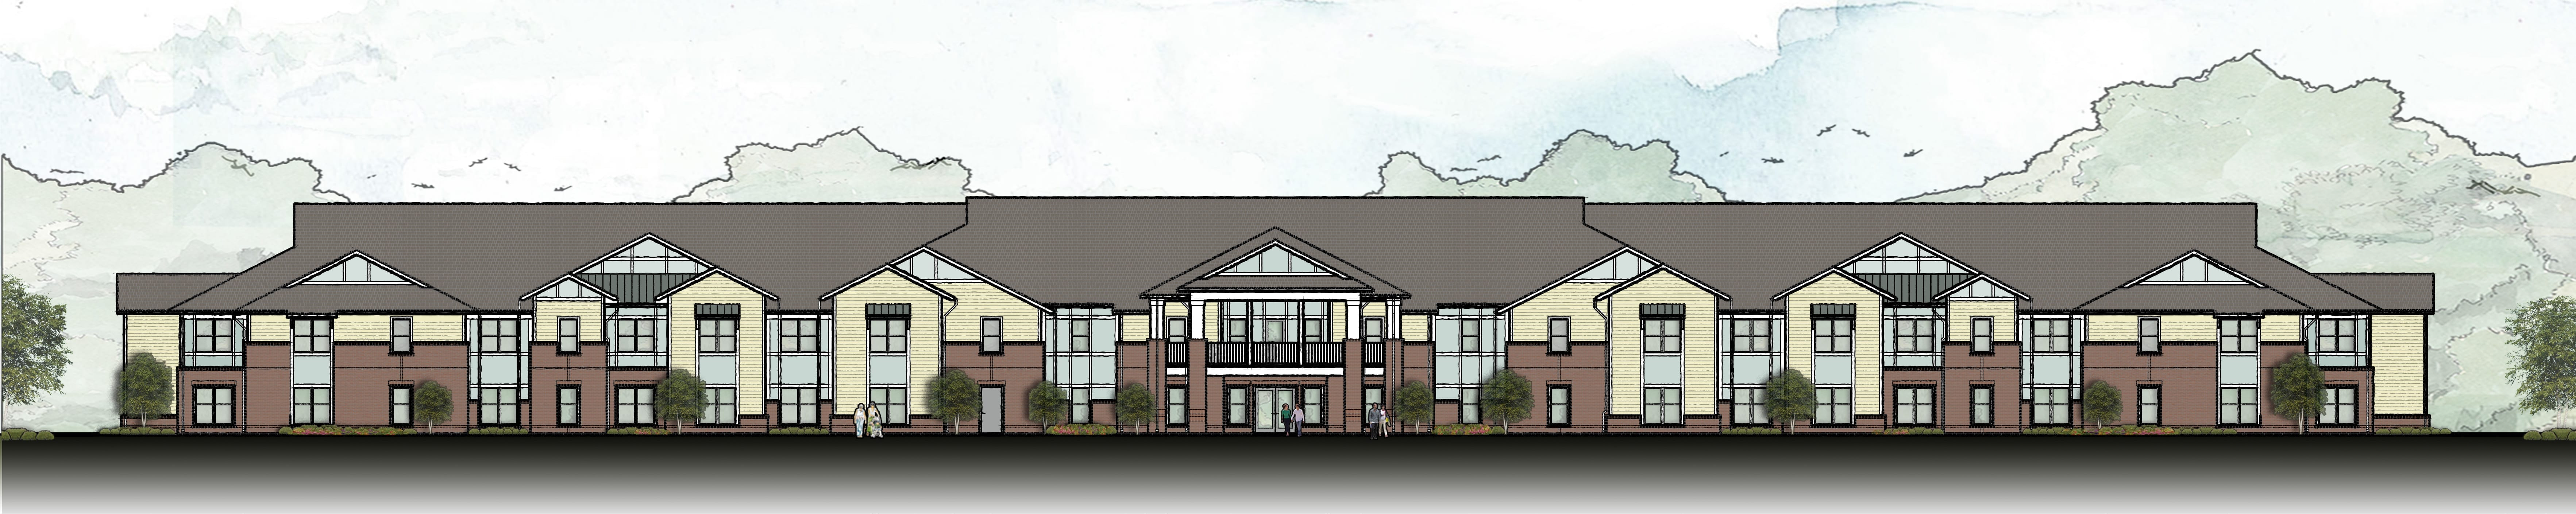 Tooley Place Senior Living Community, Elizabeth City